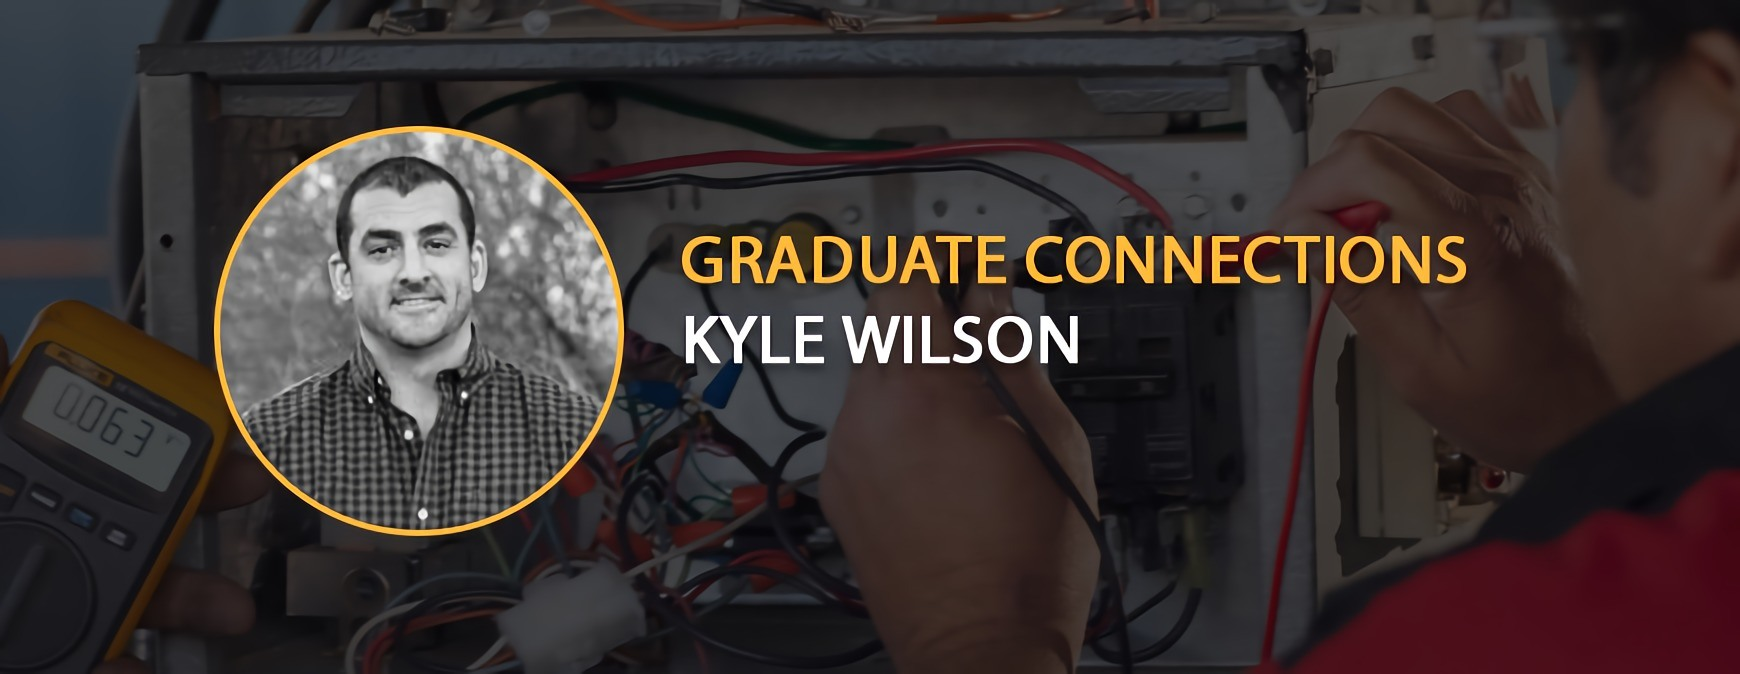 Graduate Connection Kyle Wilson